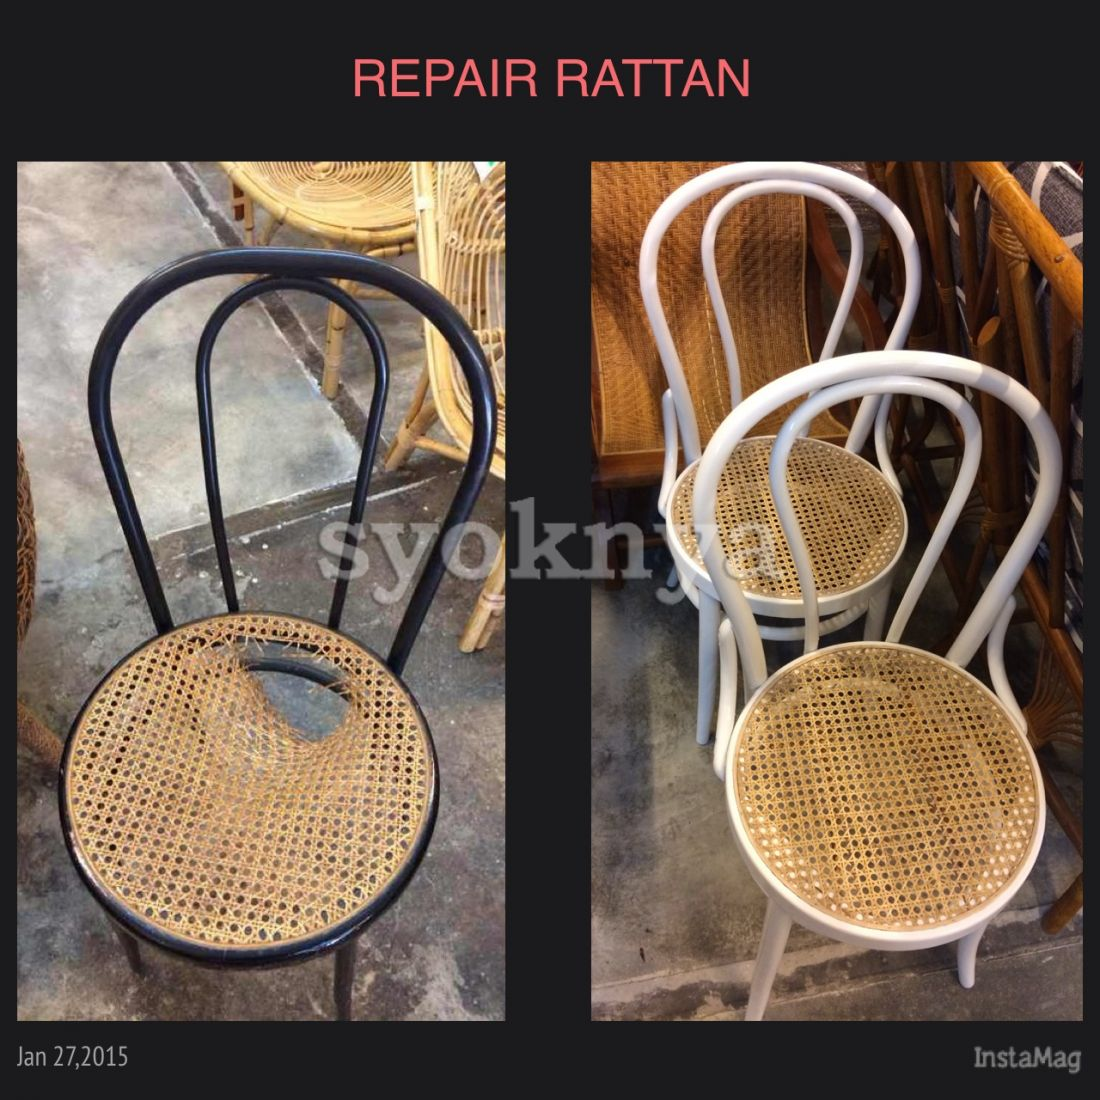 Sell Repair Rattan Furniture, Rattan Sofa, Cane/Wicker Chair, Wood Chair In  KL